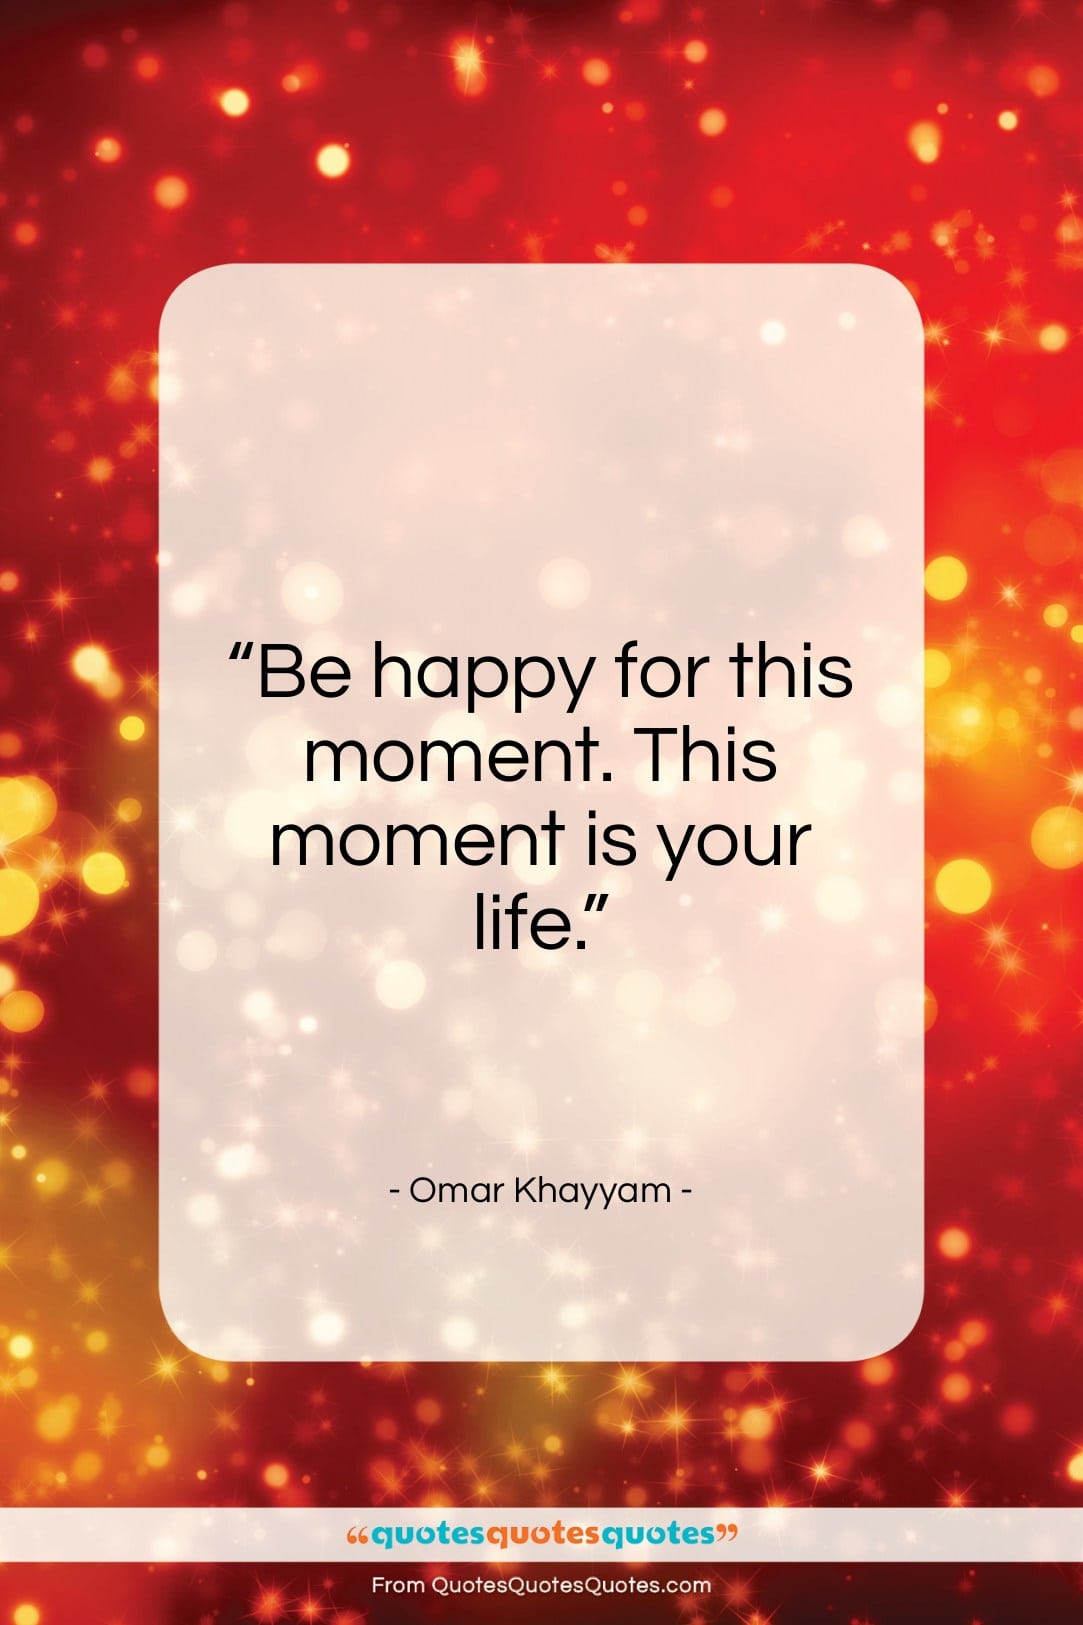 Get The Whole Omar Khayyam Quote Be Happy For This Moment This